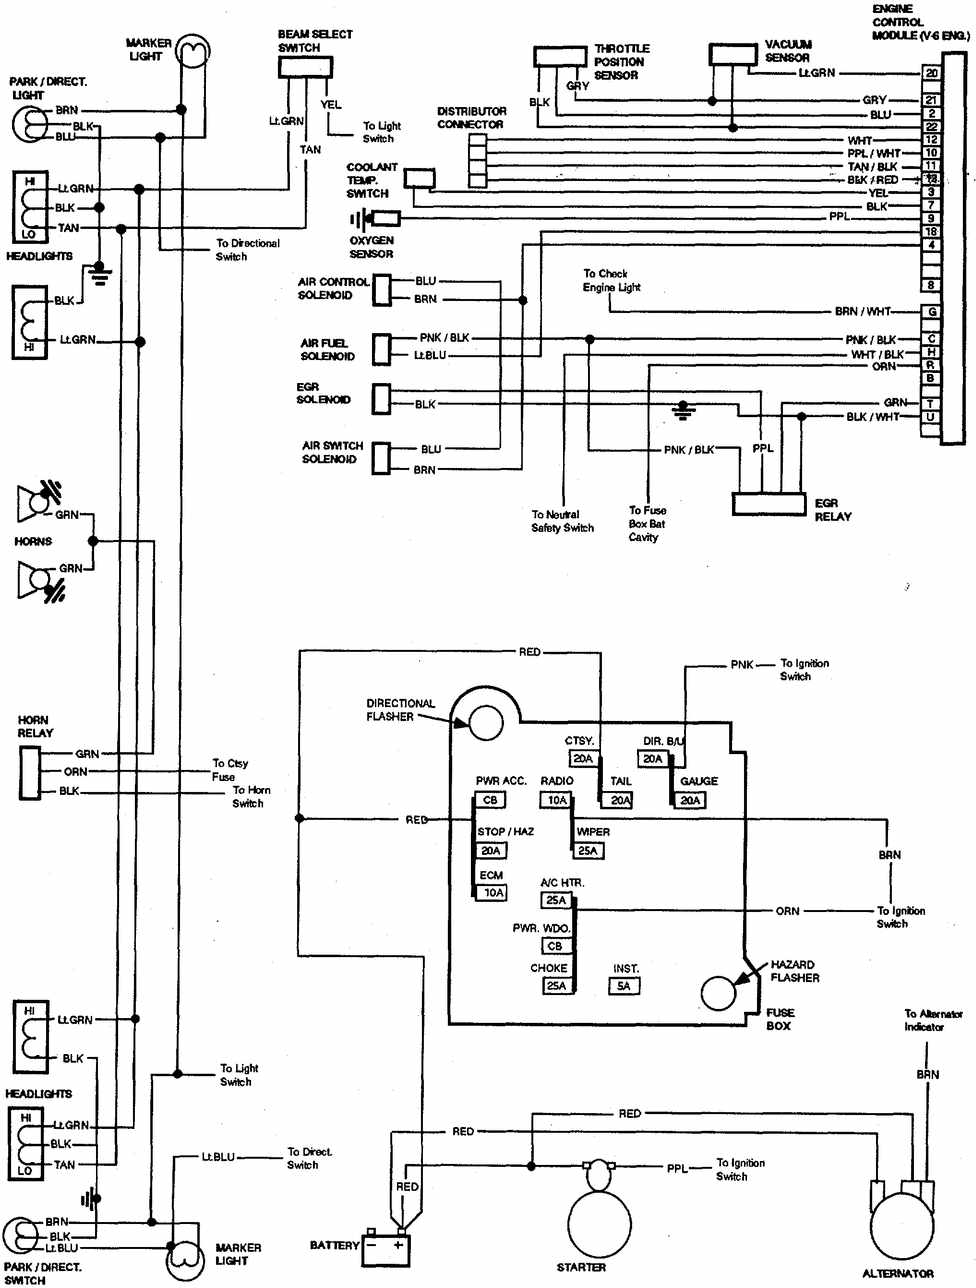 power window wiring diagram on 92 cadillac deville engine diagram